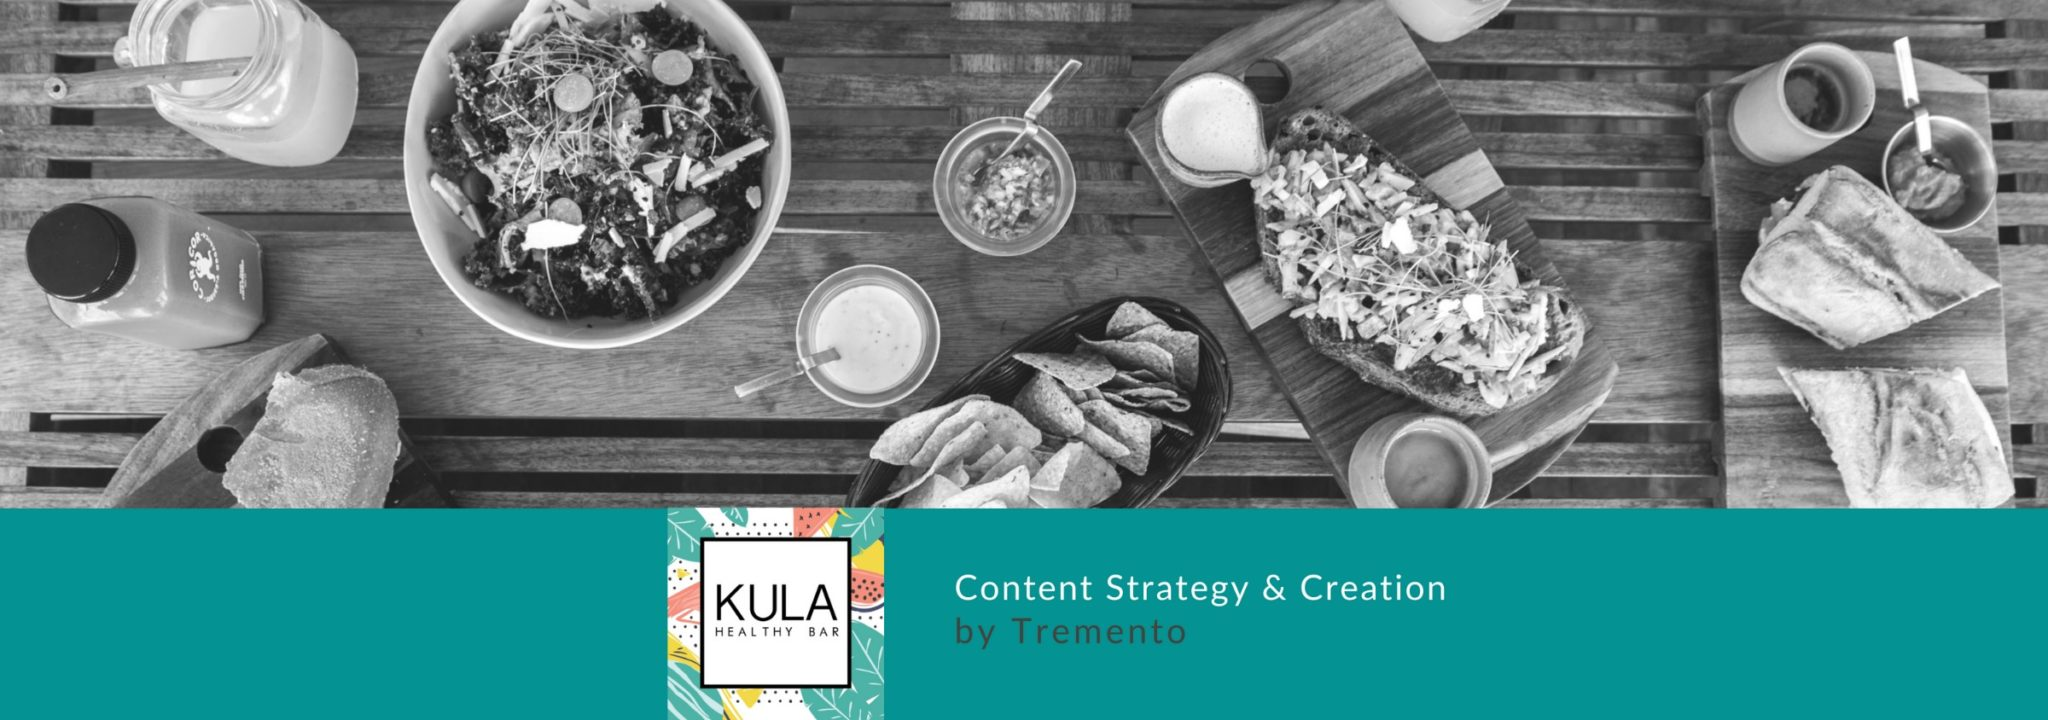 KULA - Content Strategy & Creation - Hospitality Advertising Agency Tremento